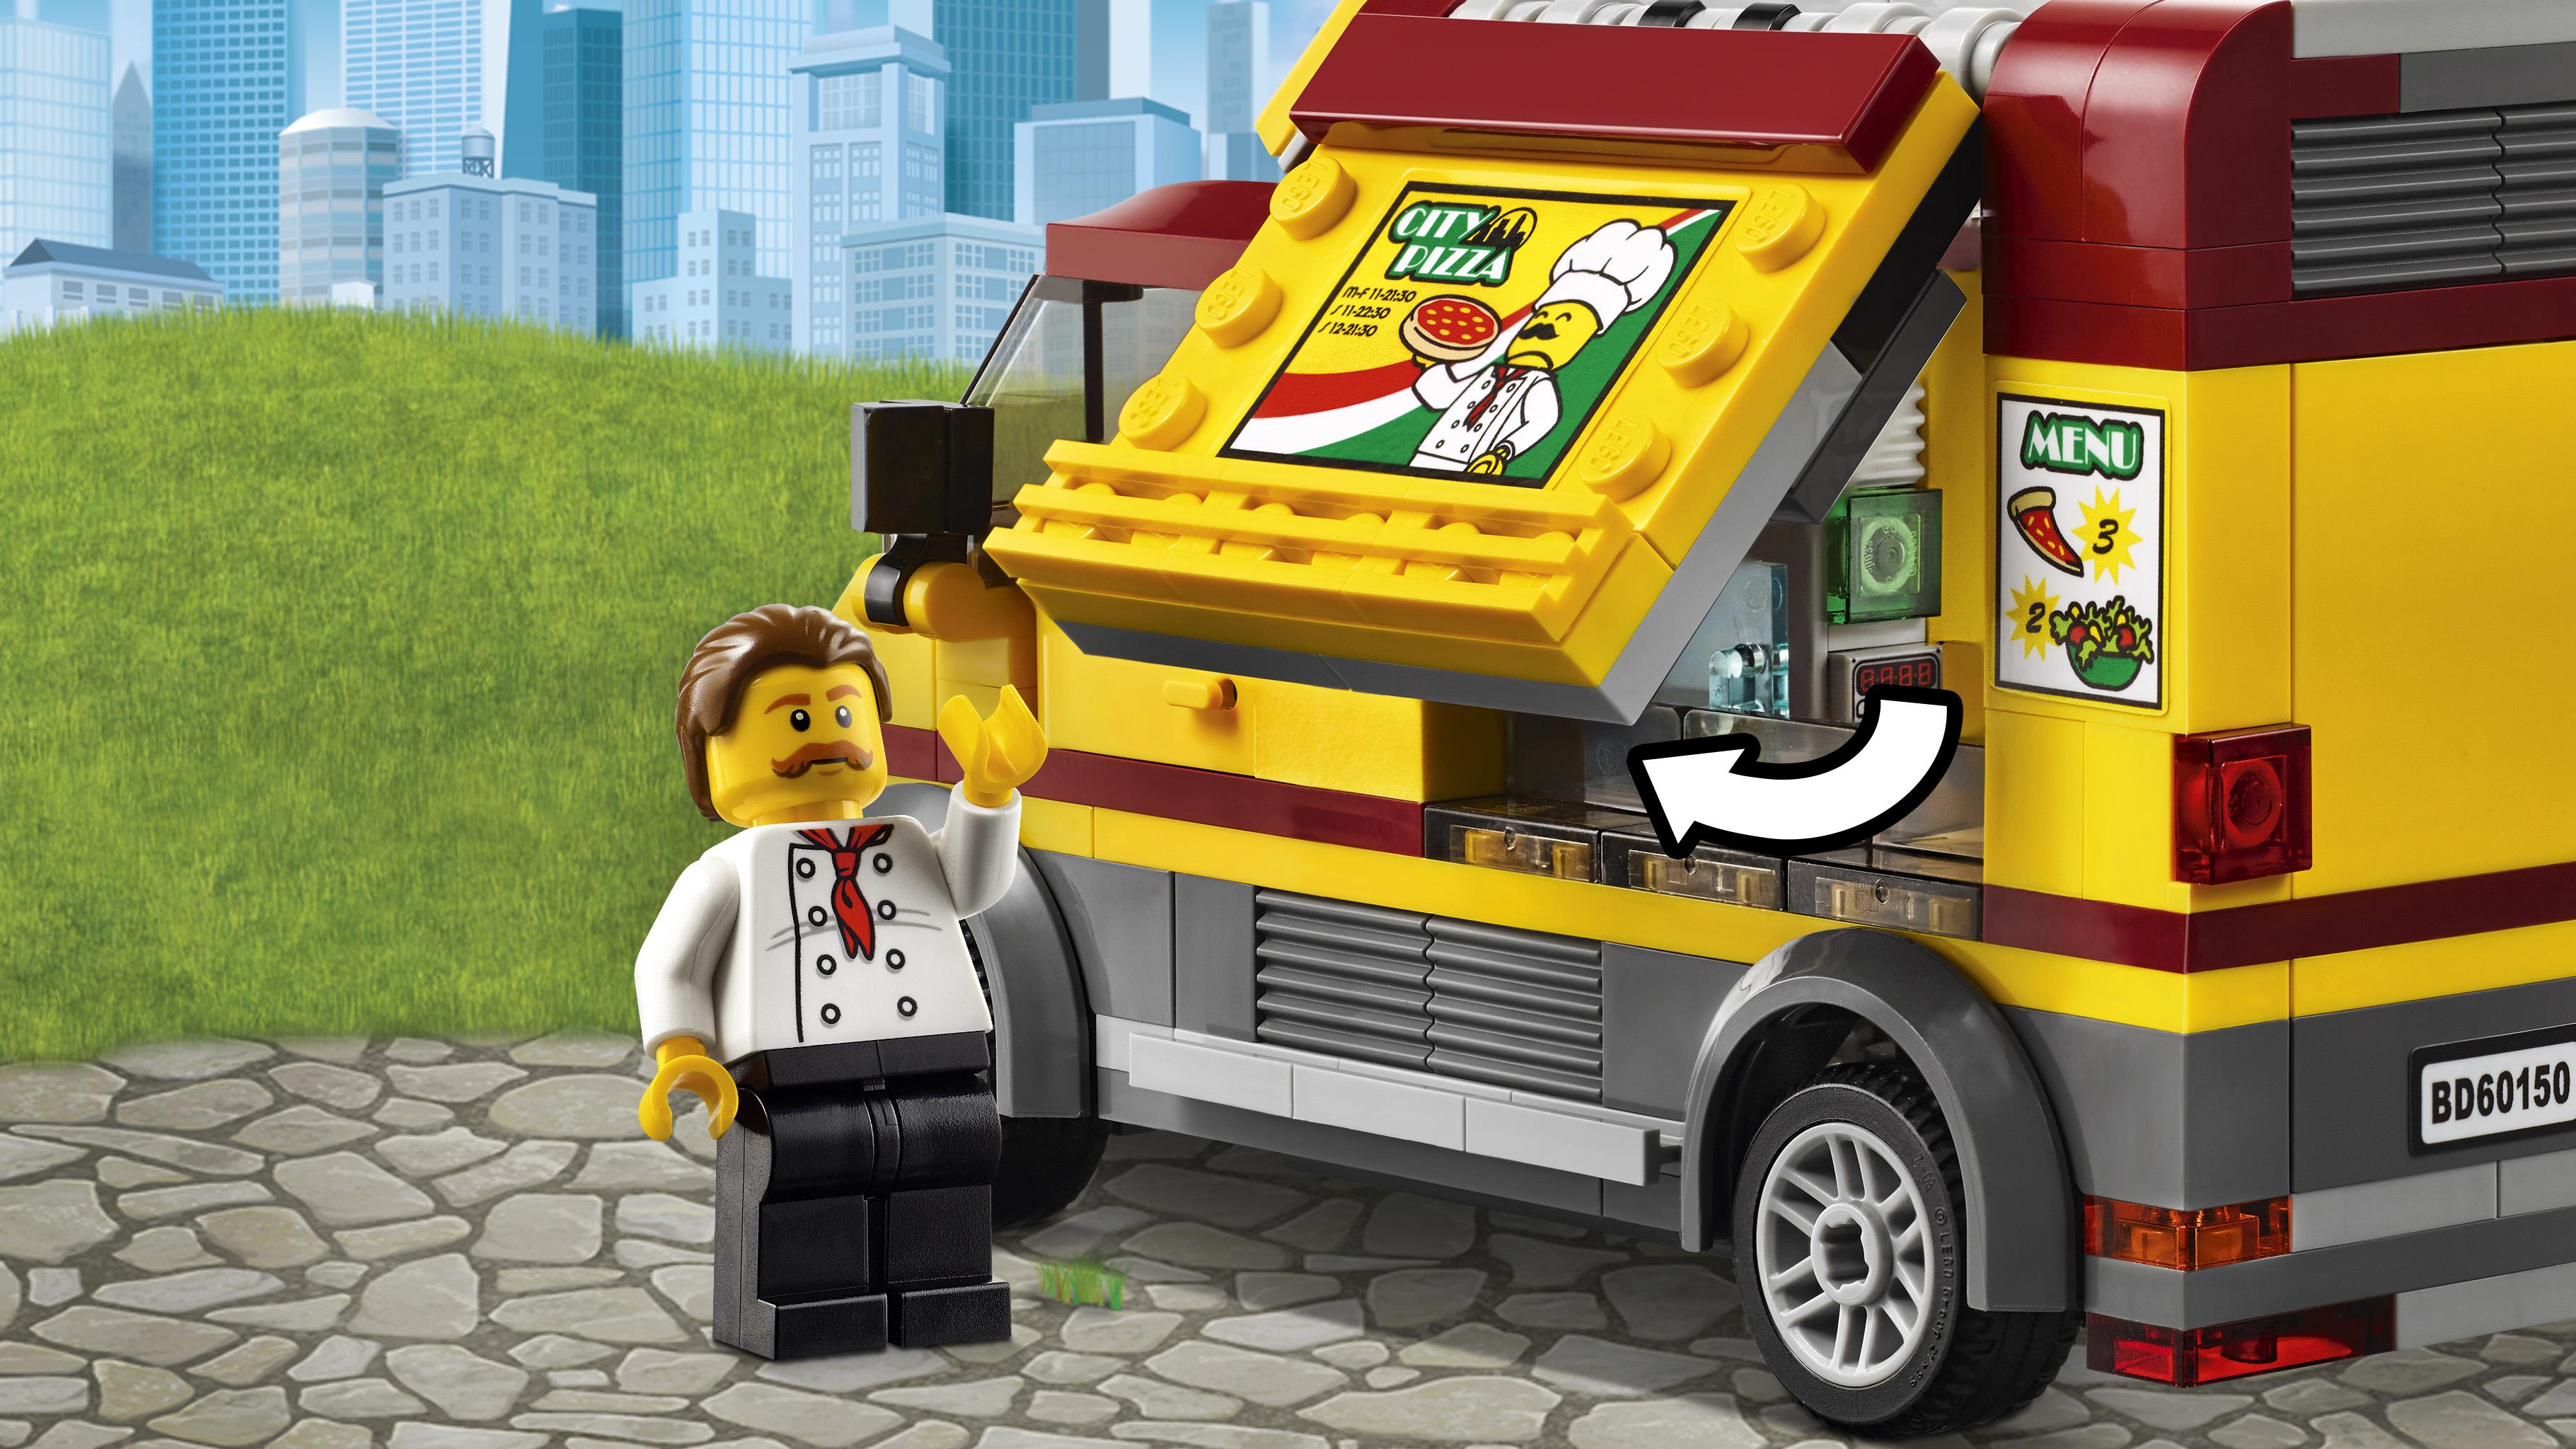 pizza van features opening sides and a kitchen area for the chef to serve pizza - Camion Lego